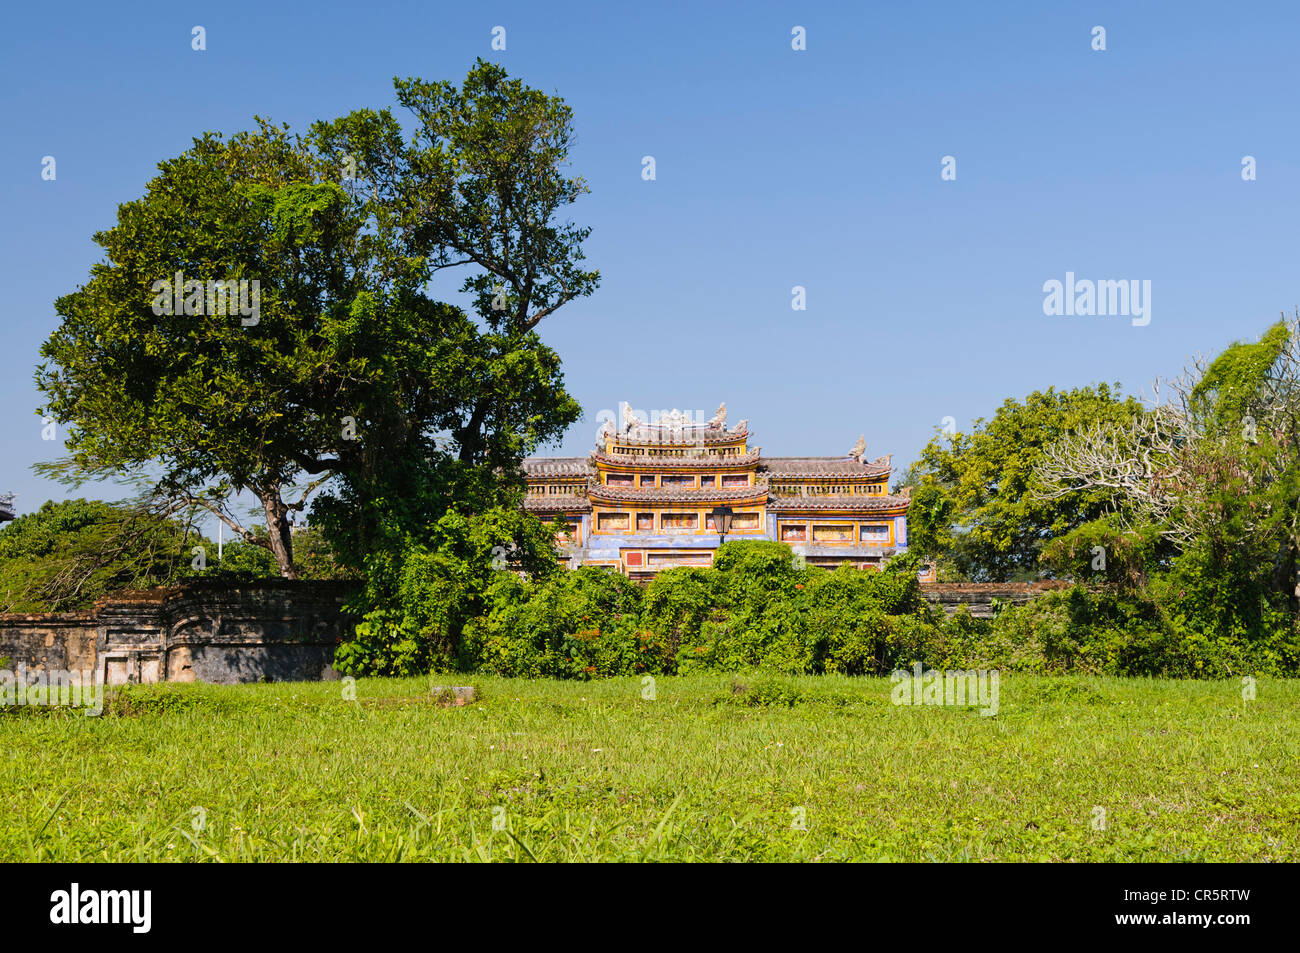 Lawn in front of the gate to the Temple of Generations, The Mieu, Thai Hoa Palace Complex, Hoang Thanh Imperial - Stock Image